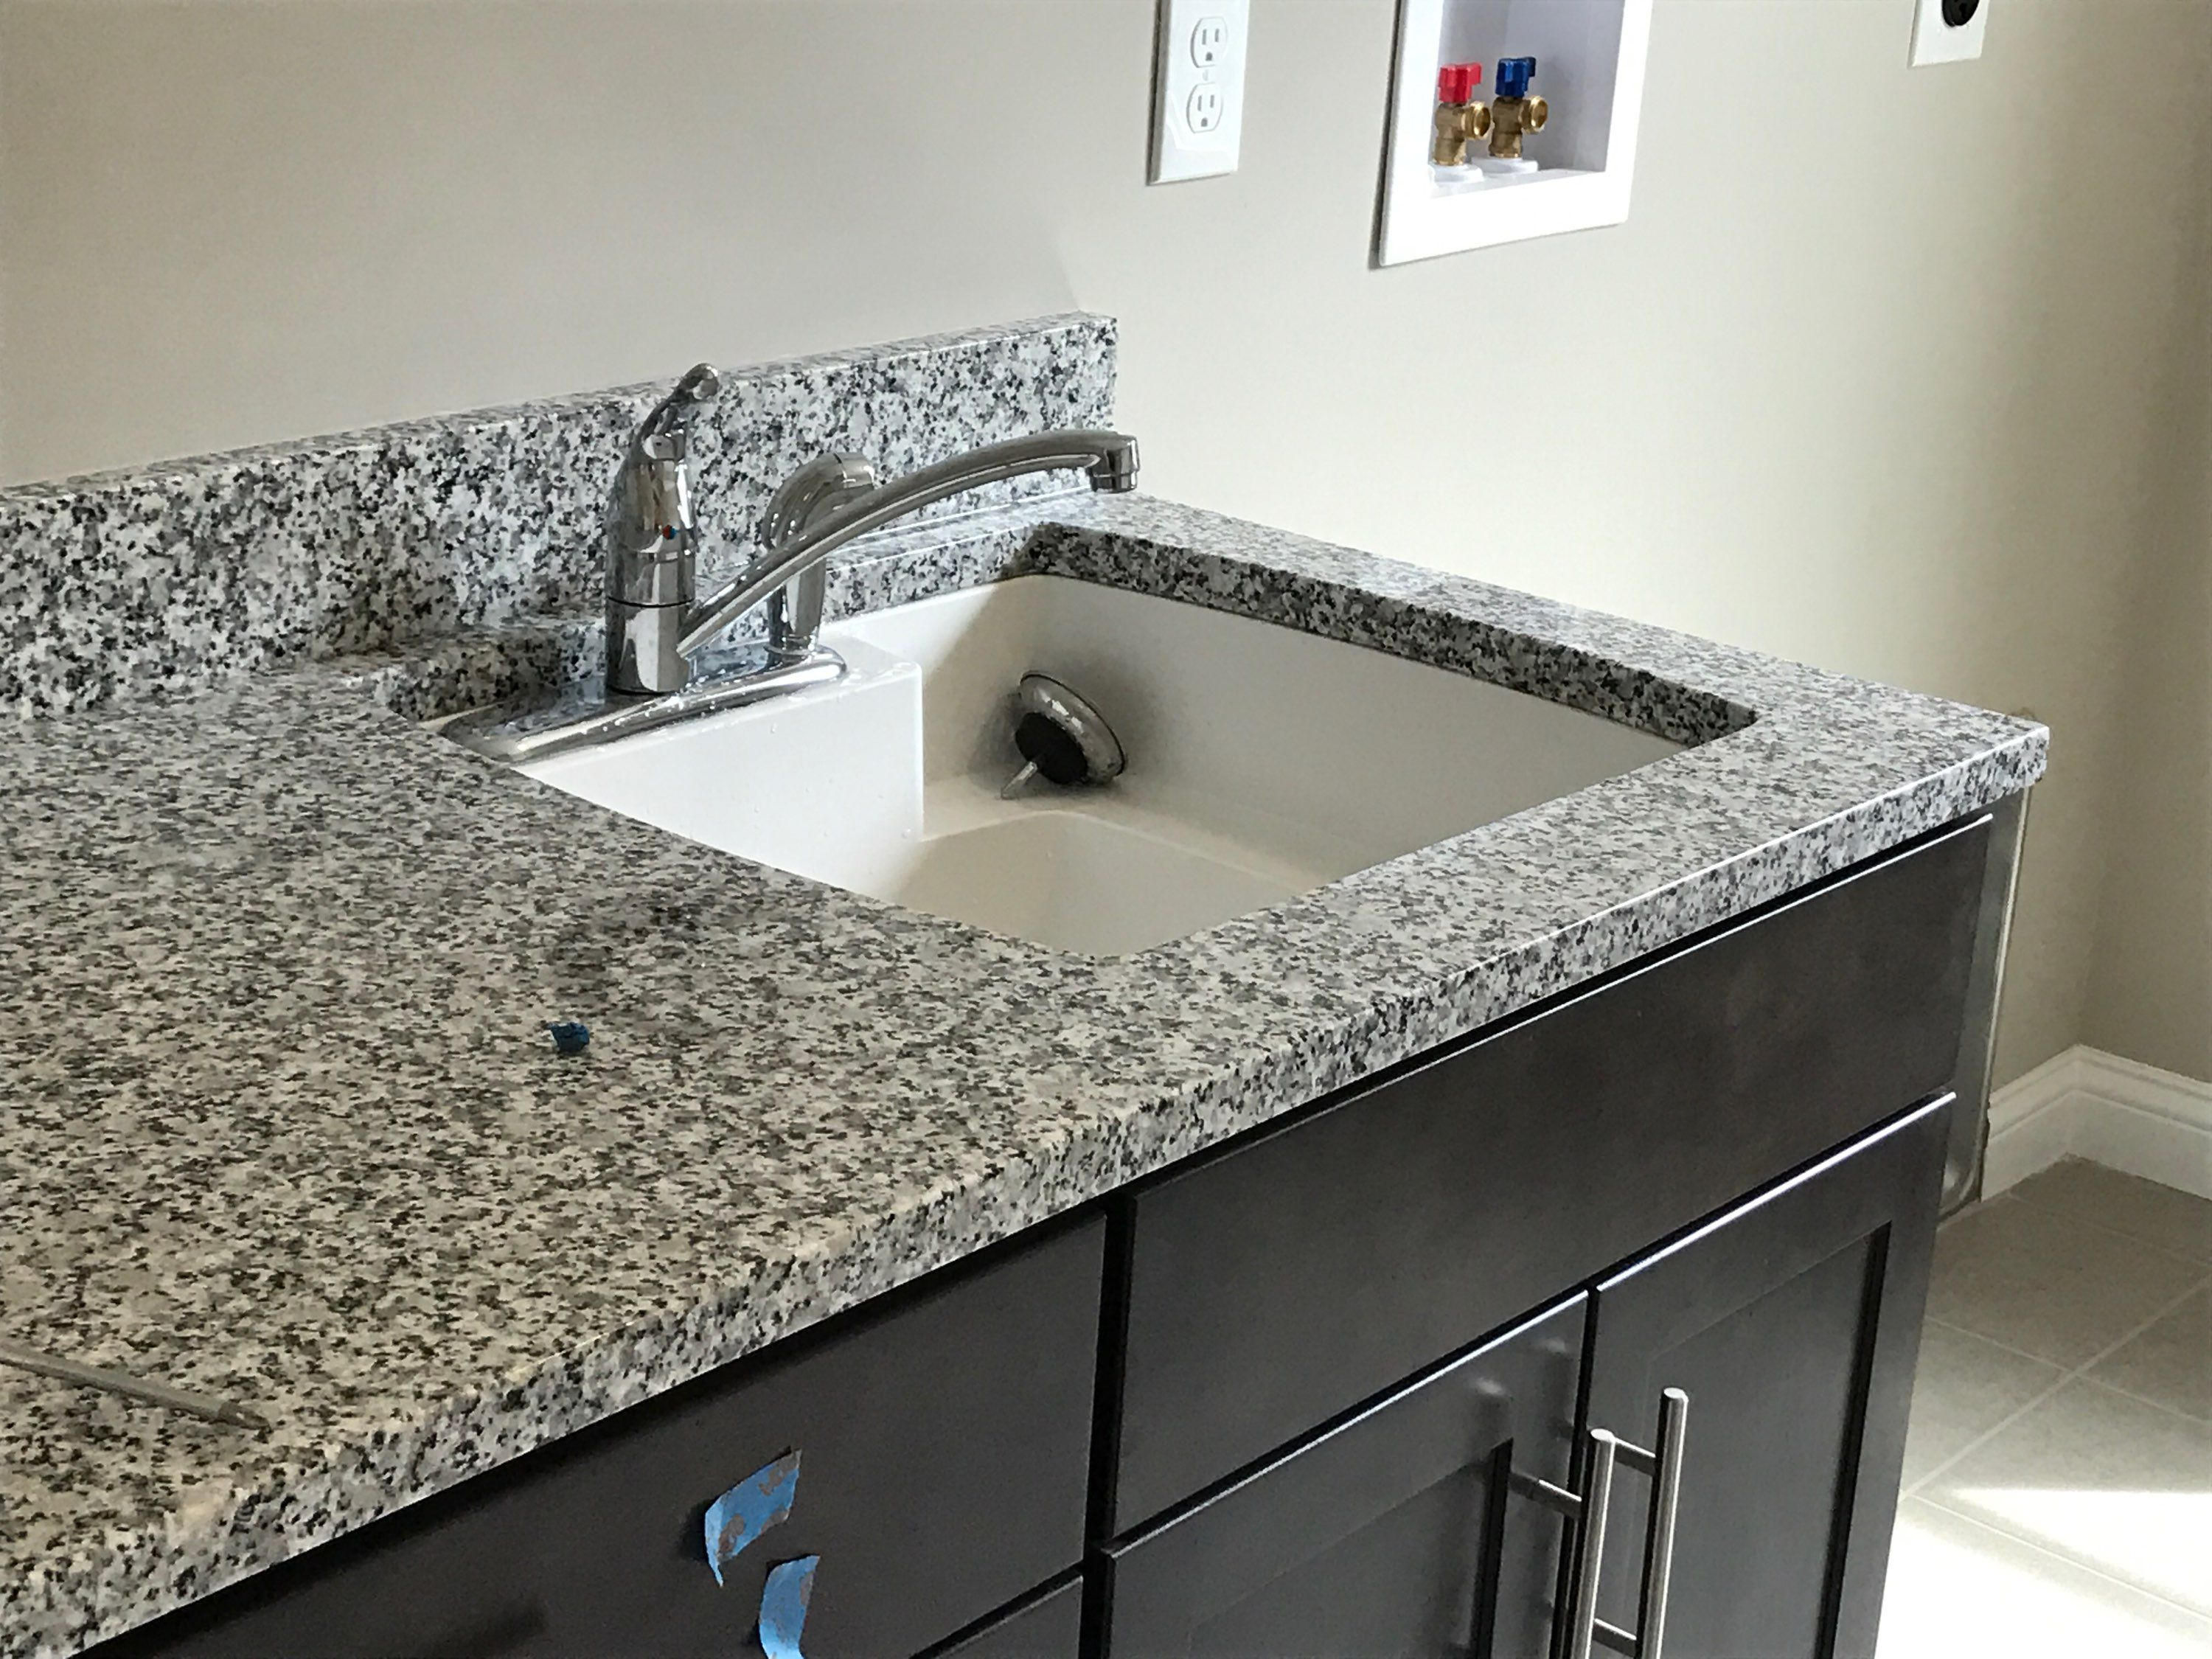 Undermount White Latitude Sink With Standard Chateau Faucet In Laundry